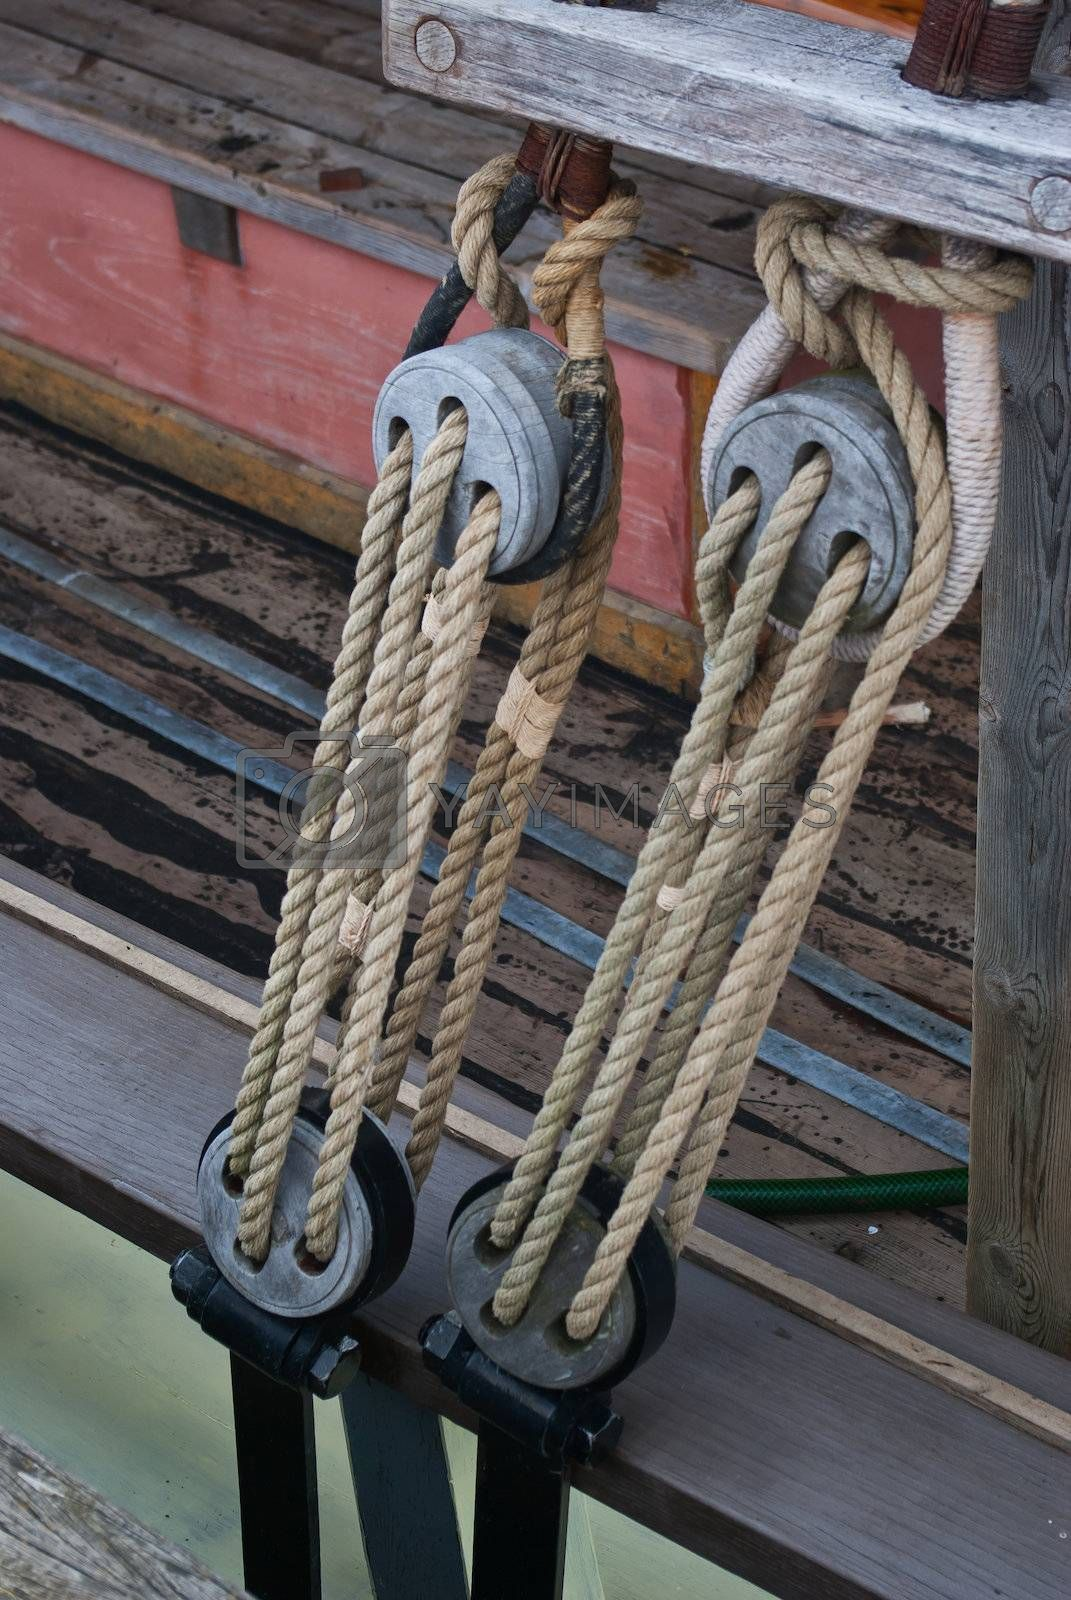 Nautical ropes and vintage wooden pulley on a sail boat sailing background image